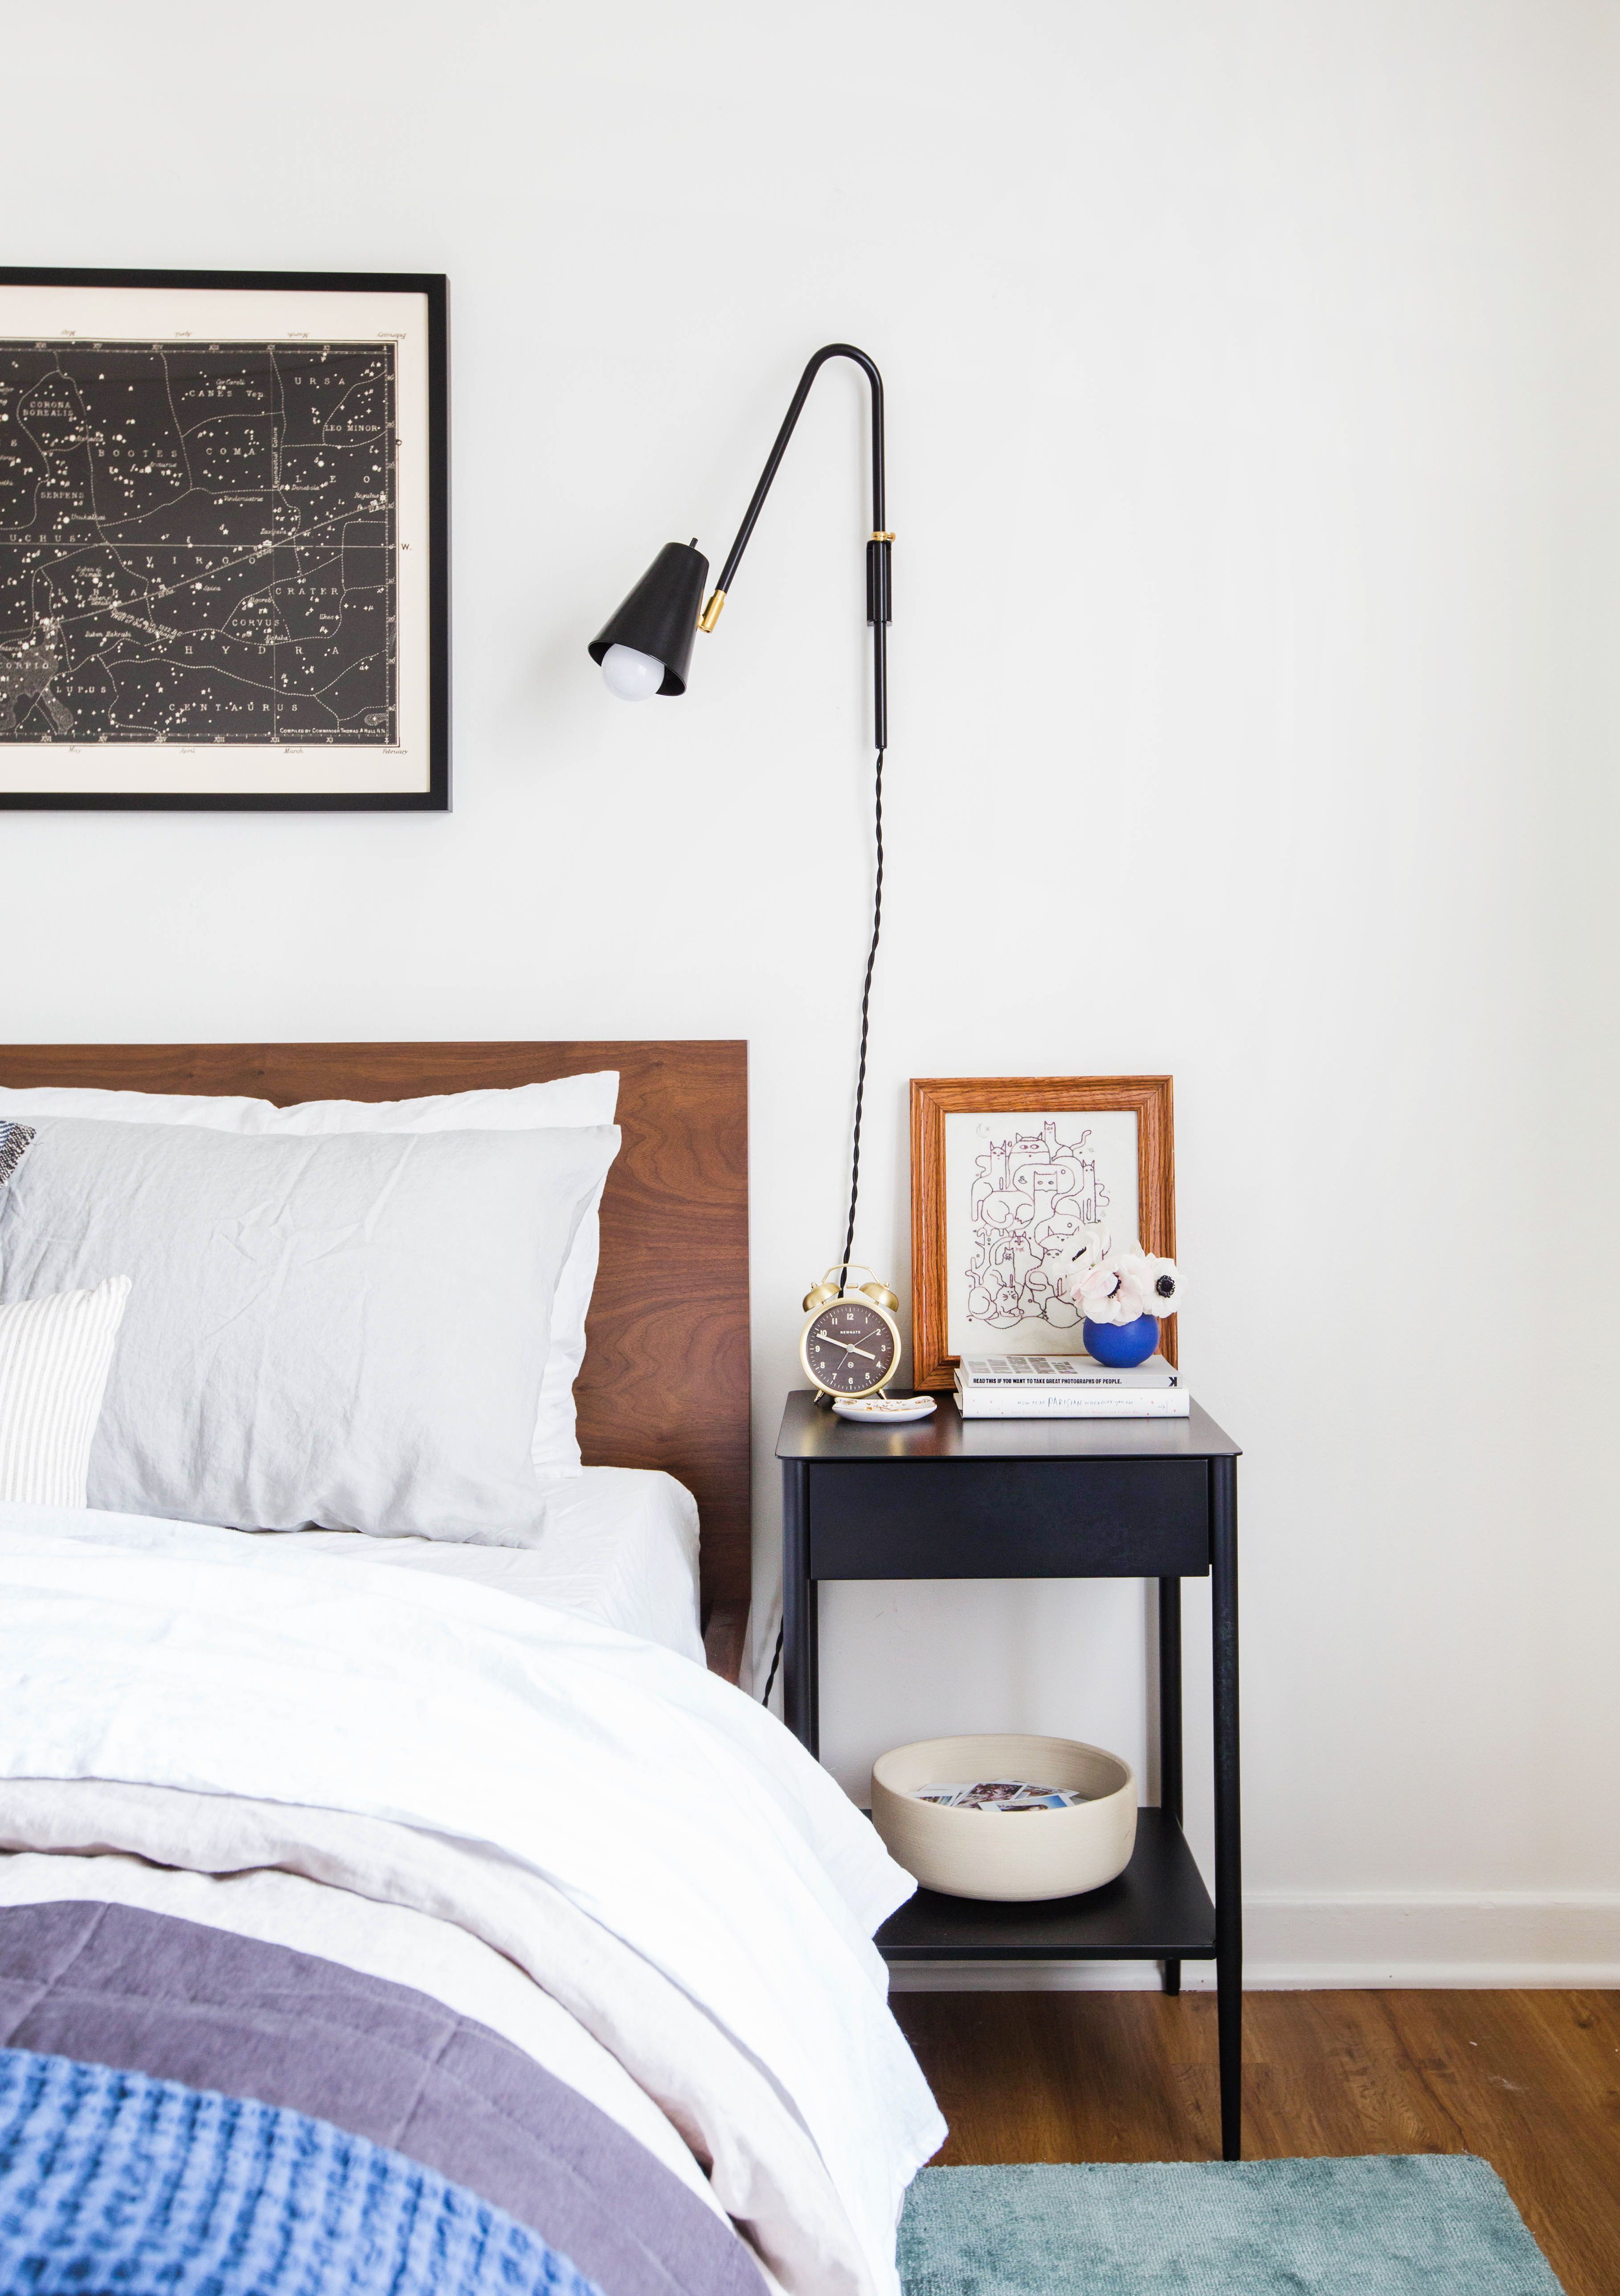 21 Minimalist Bedroom Ideas That Will Inspire You To Declutter